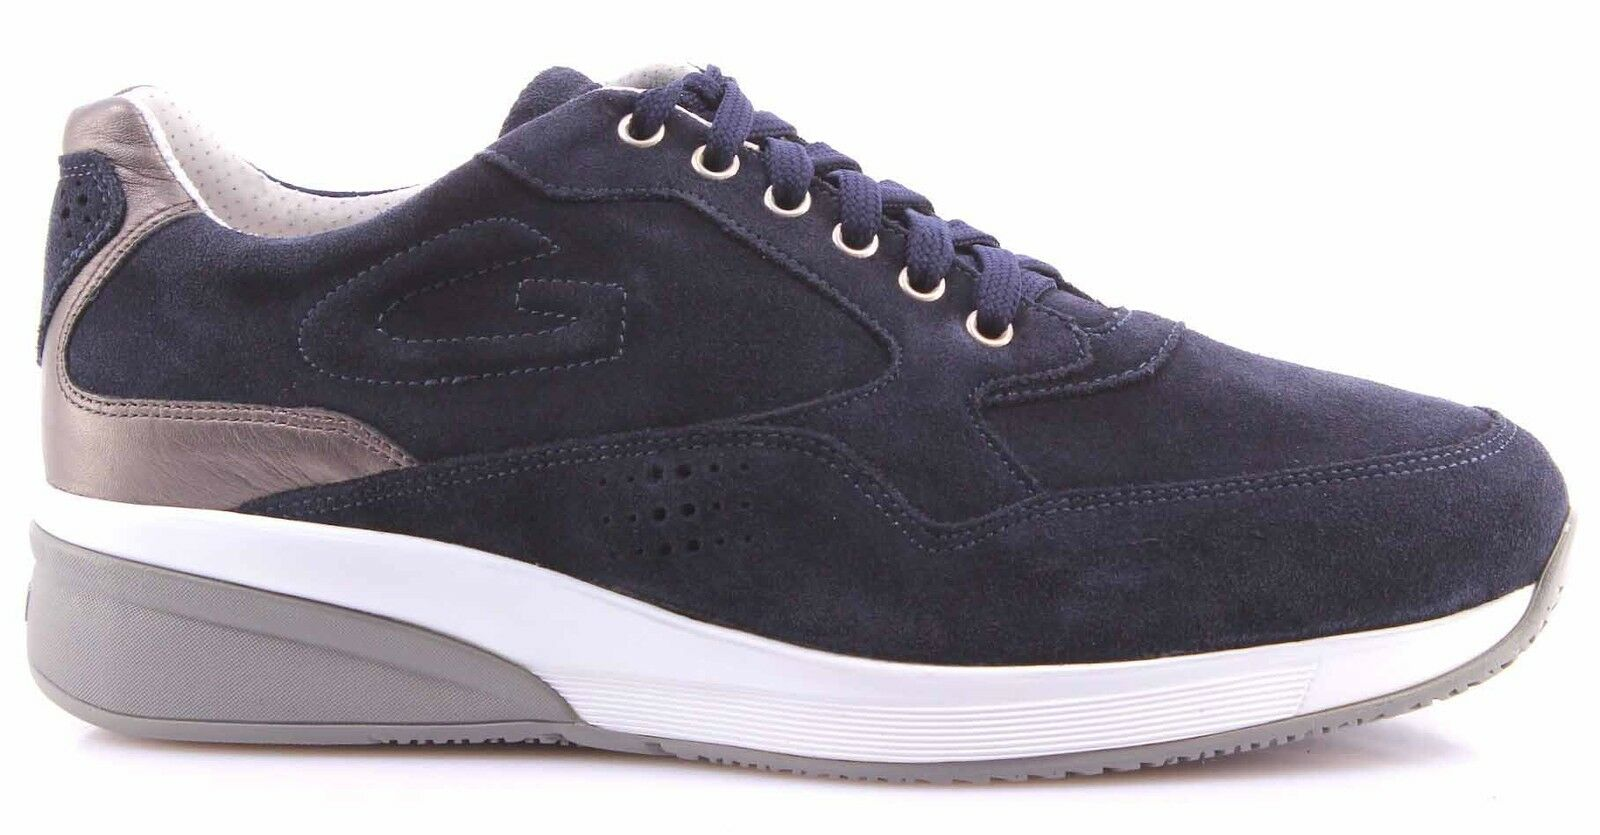 Men's Shoes Sneakers ALBERTO GUARDIANI Sport Man Shoes Grove Blue Made Italy New